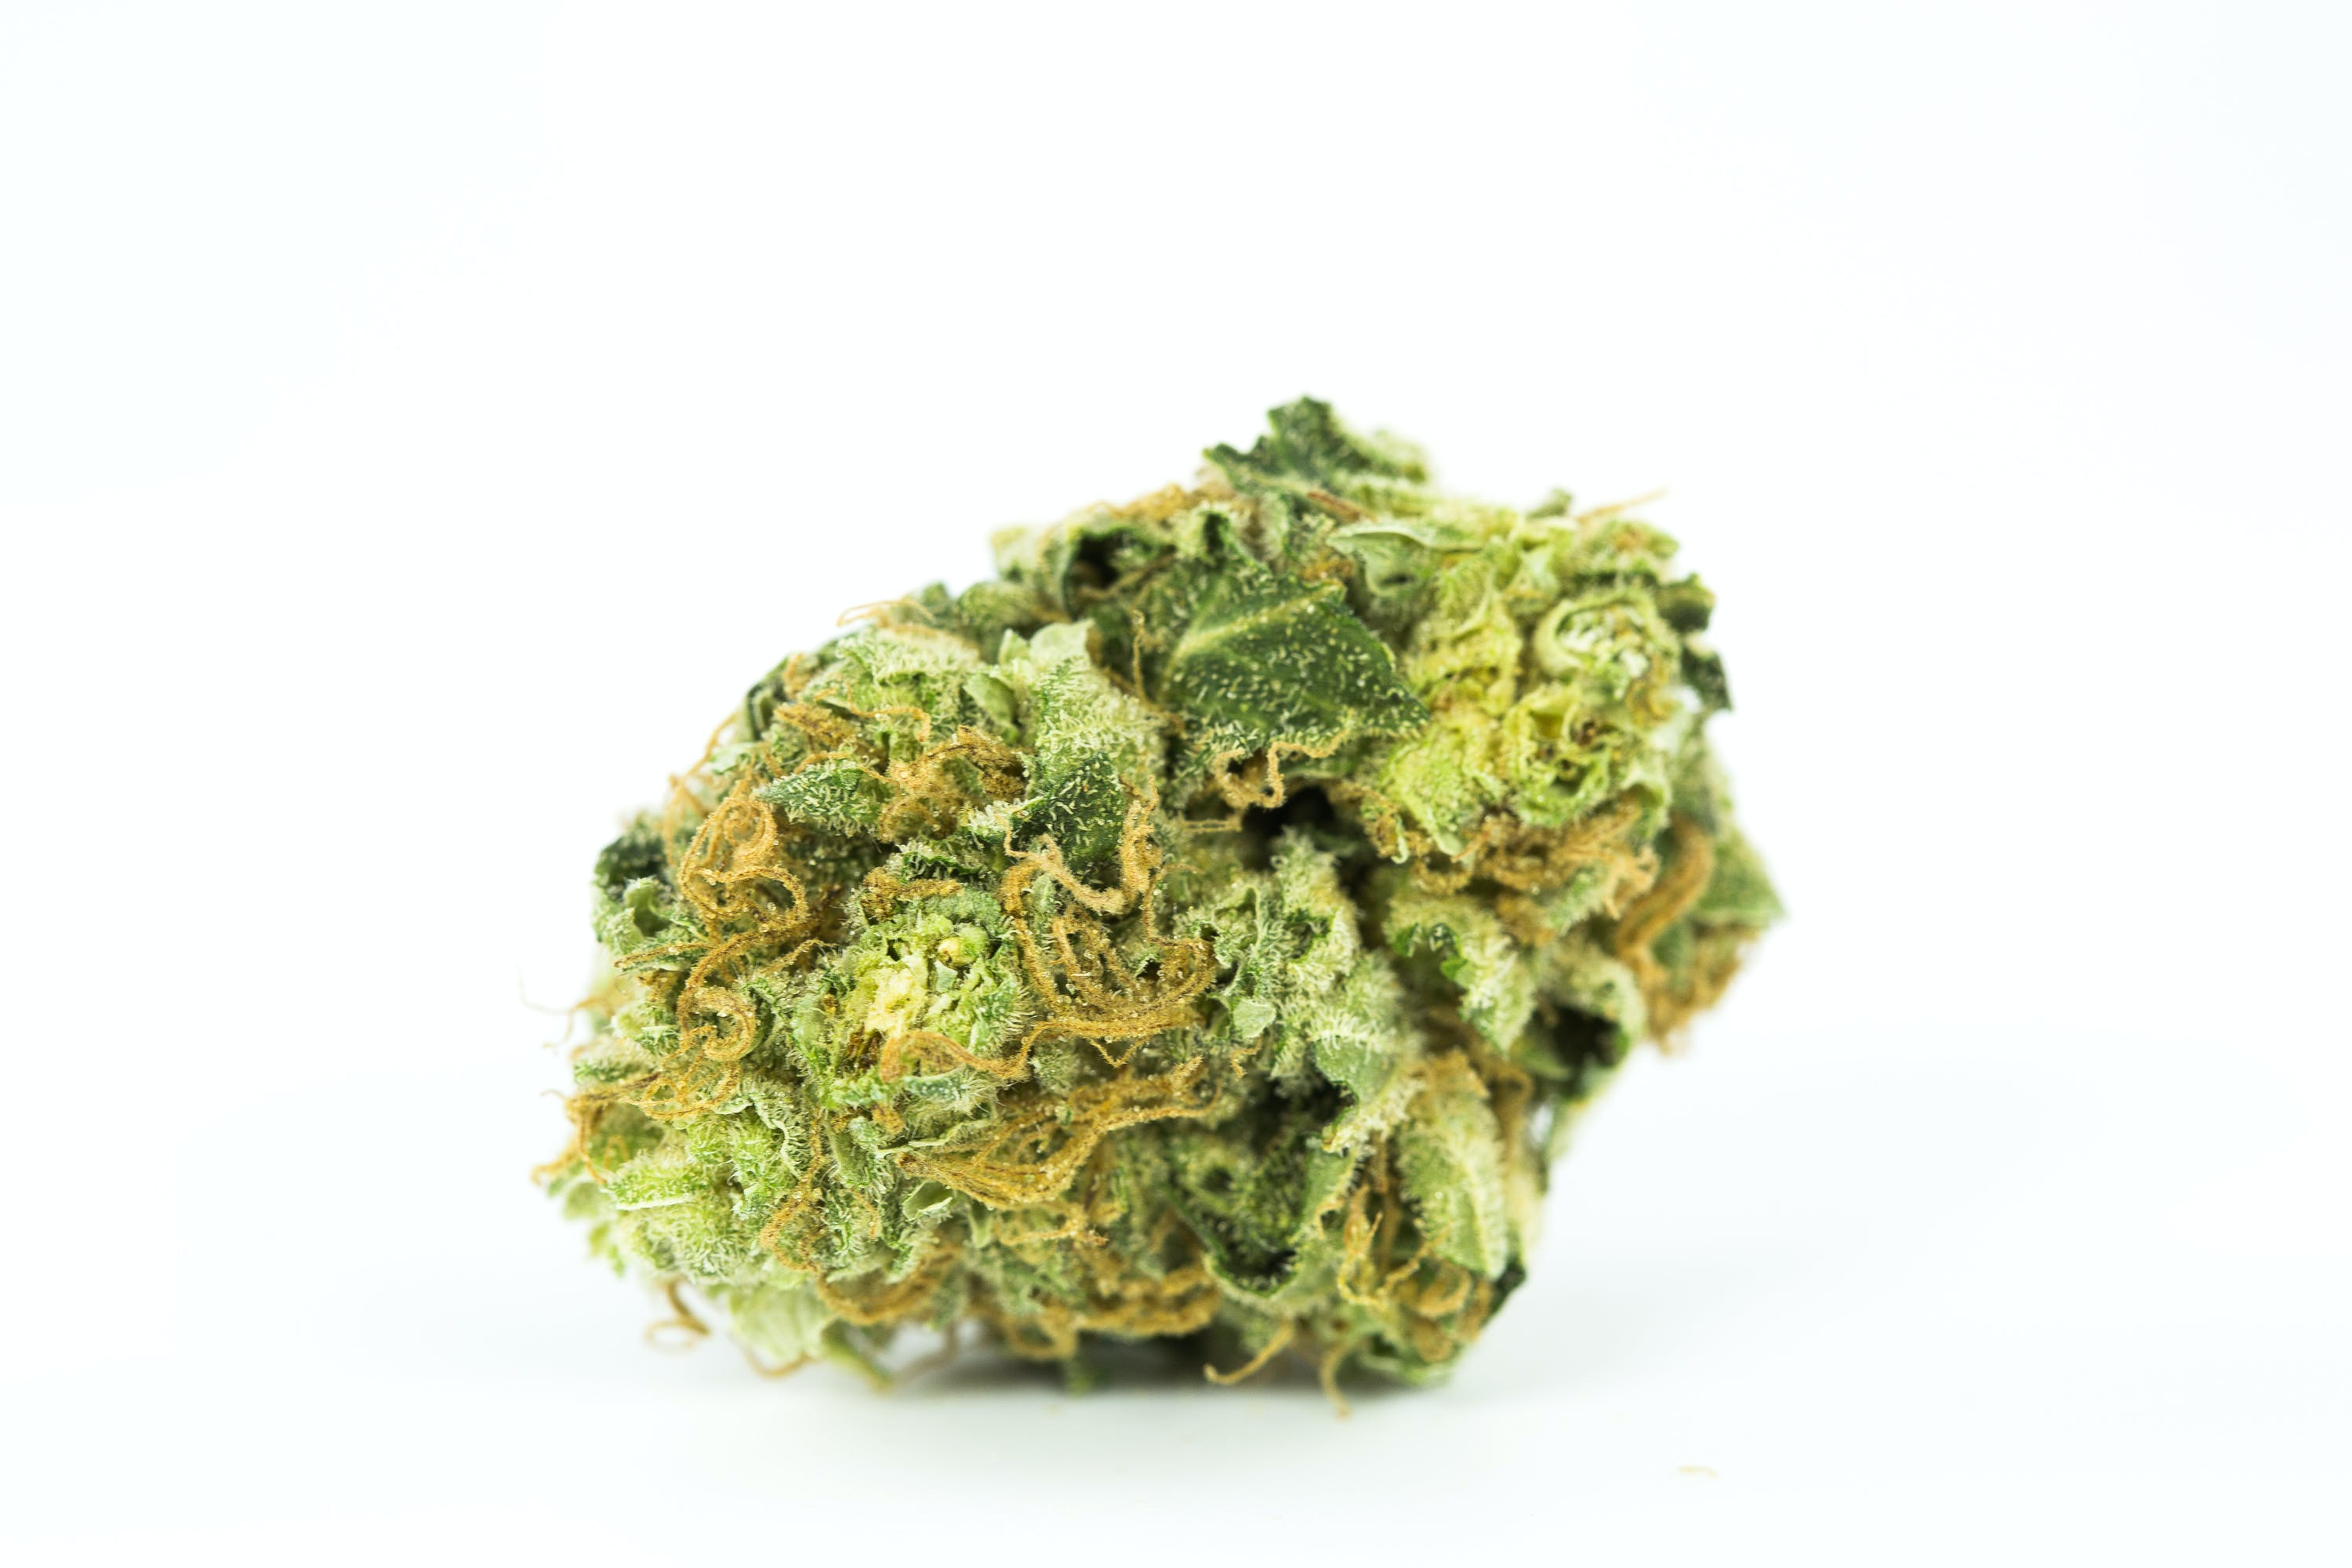 Strawberry Cough Weed; Strawberry Cough Cannabis Strain; Strawberry Cough Sativa Marijuana Strain